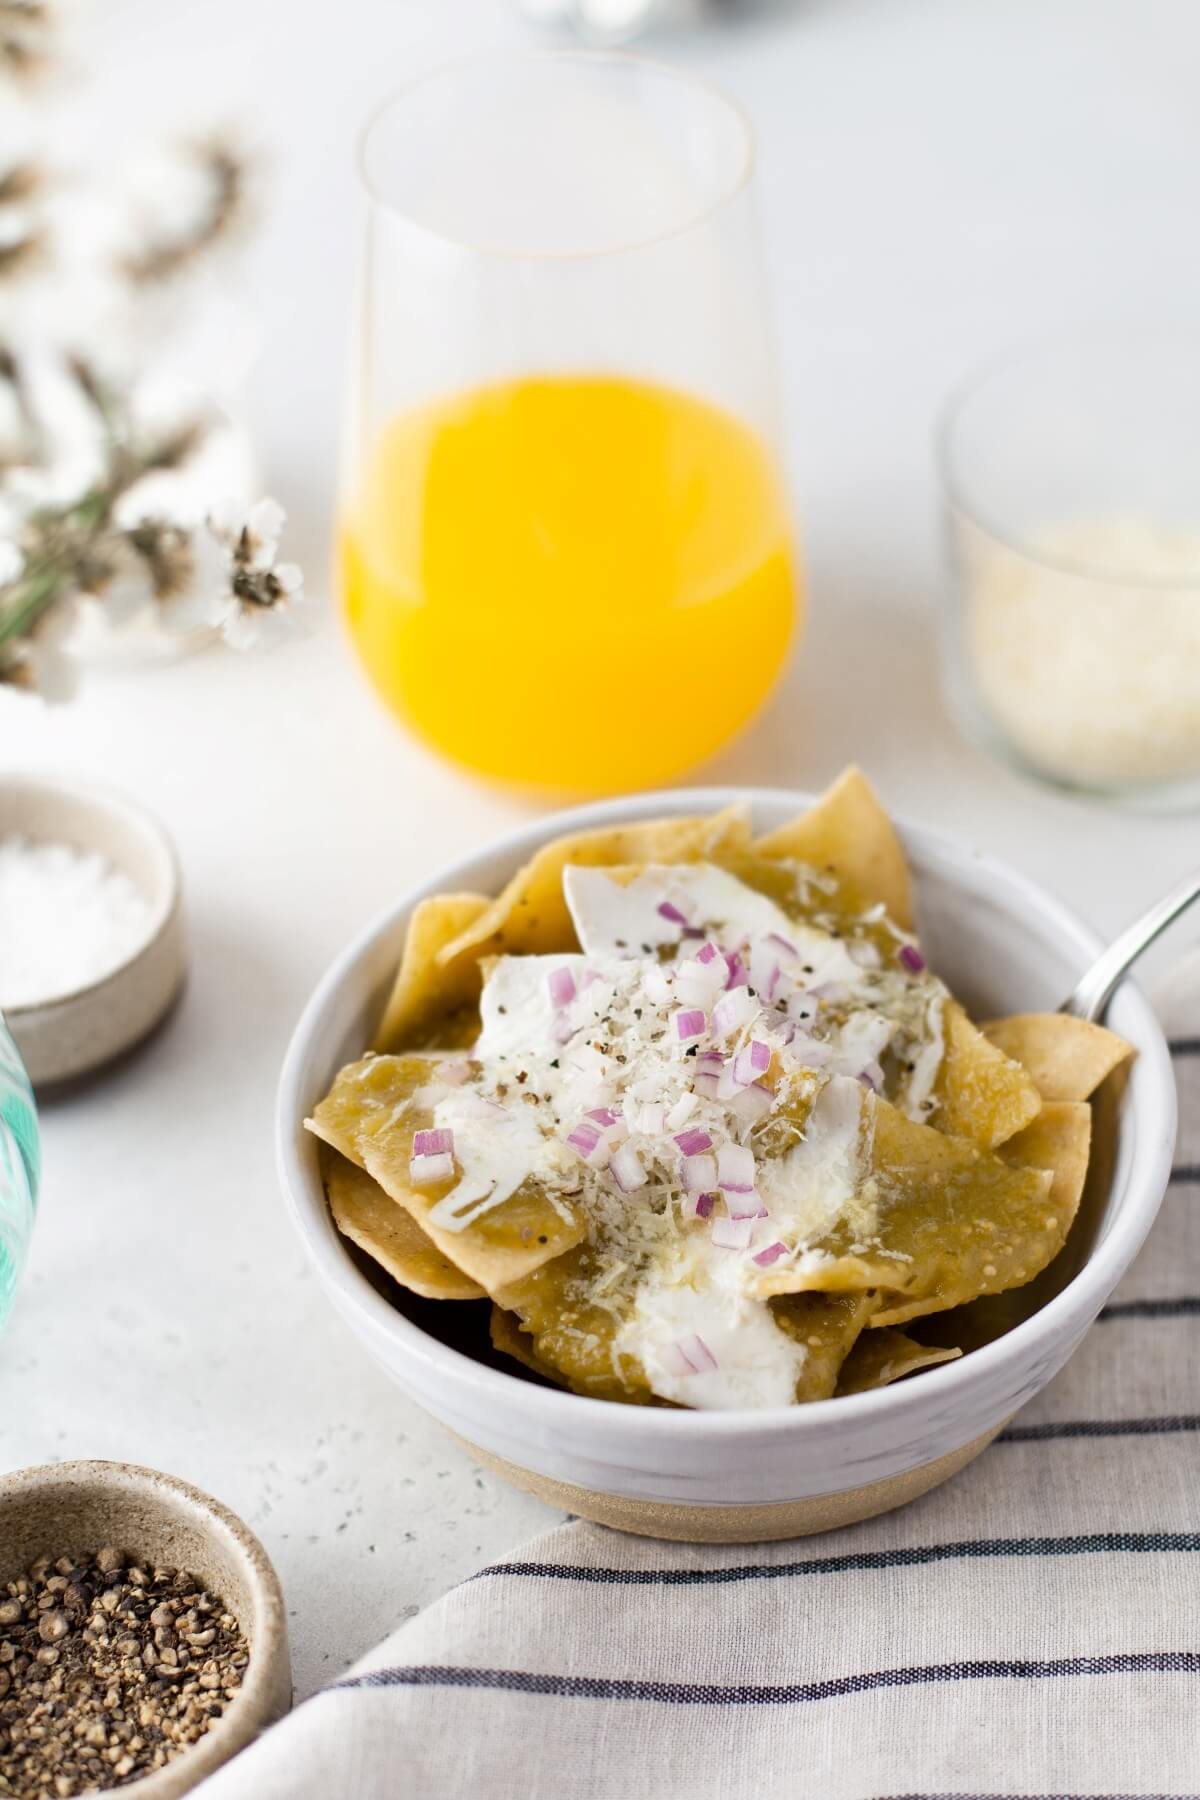 A breakfast table setting featuring a bowl of Chilaquiles Verdes topped with sour cream, diced purple onions, cilantro, and cotija cheese.